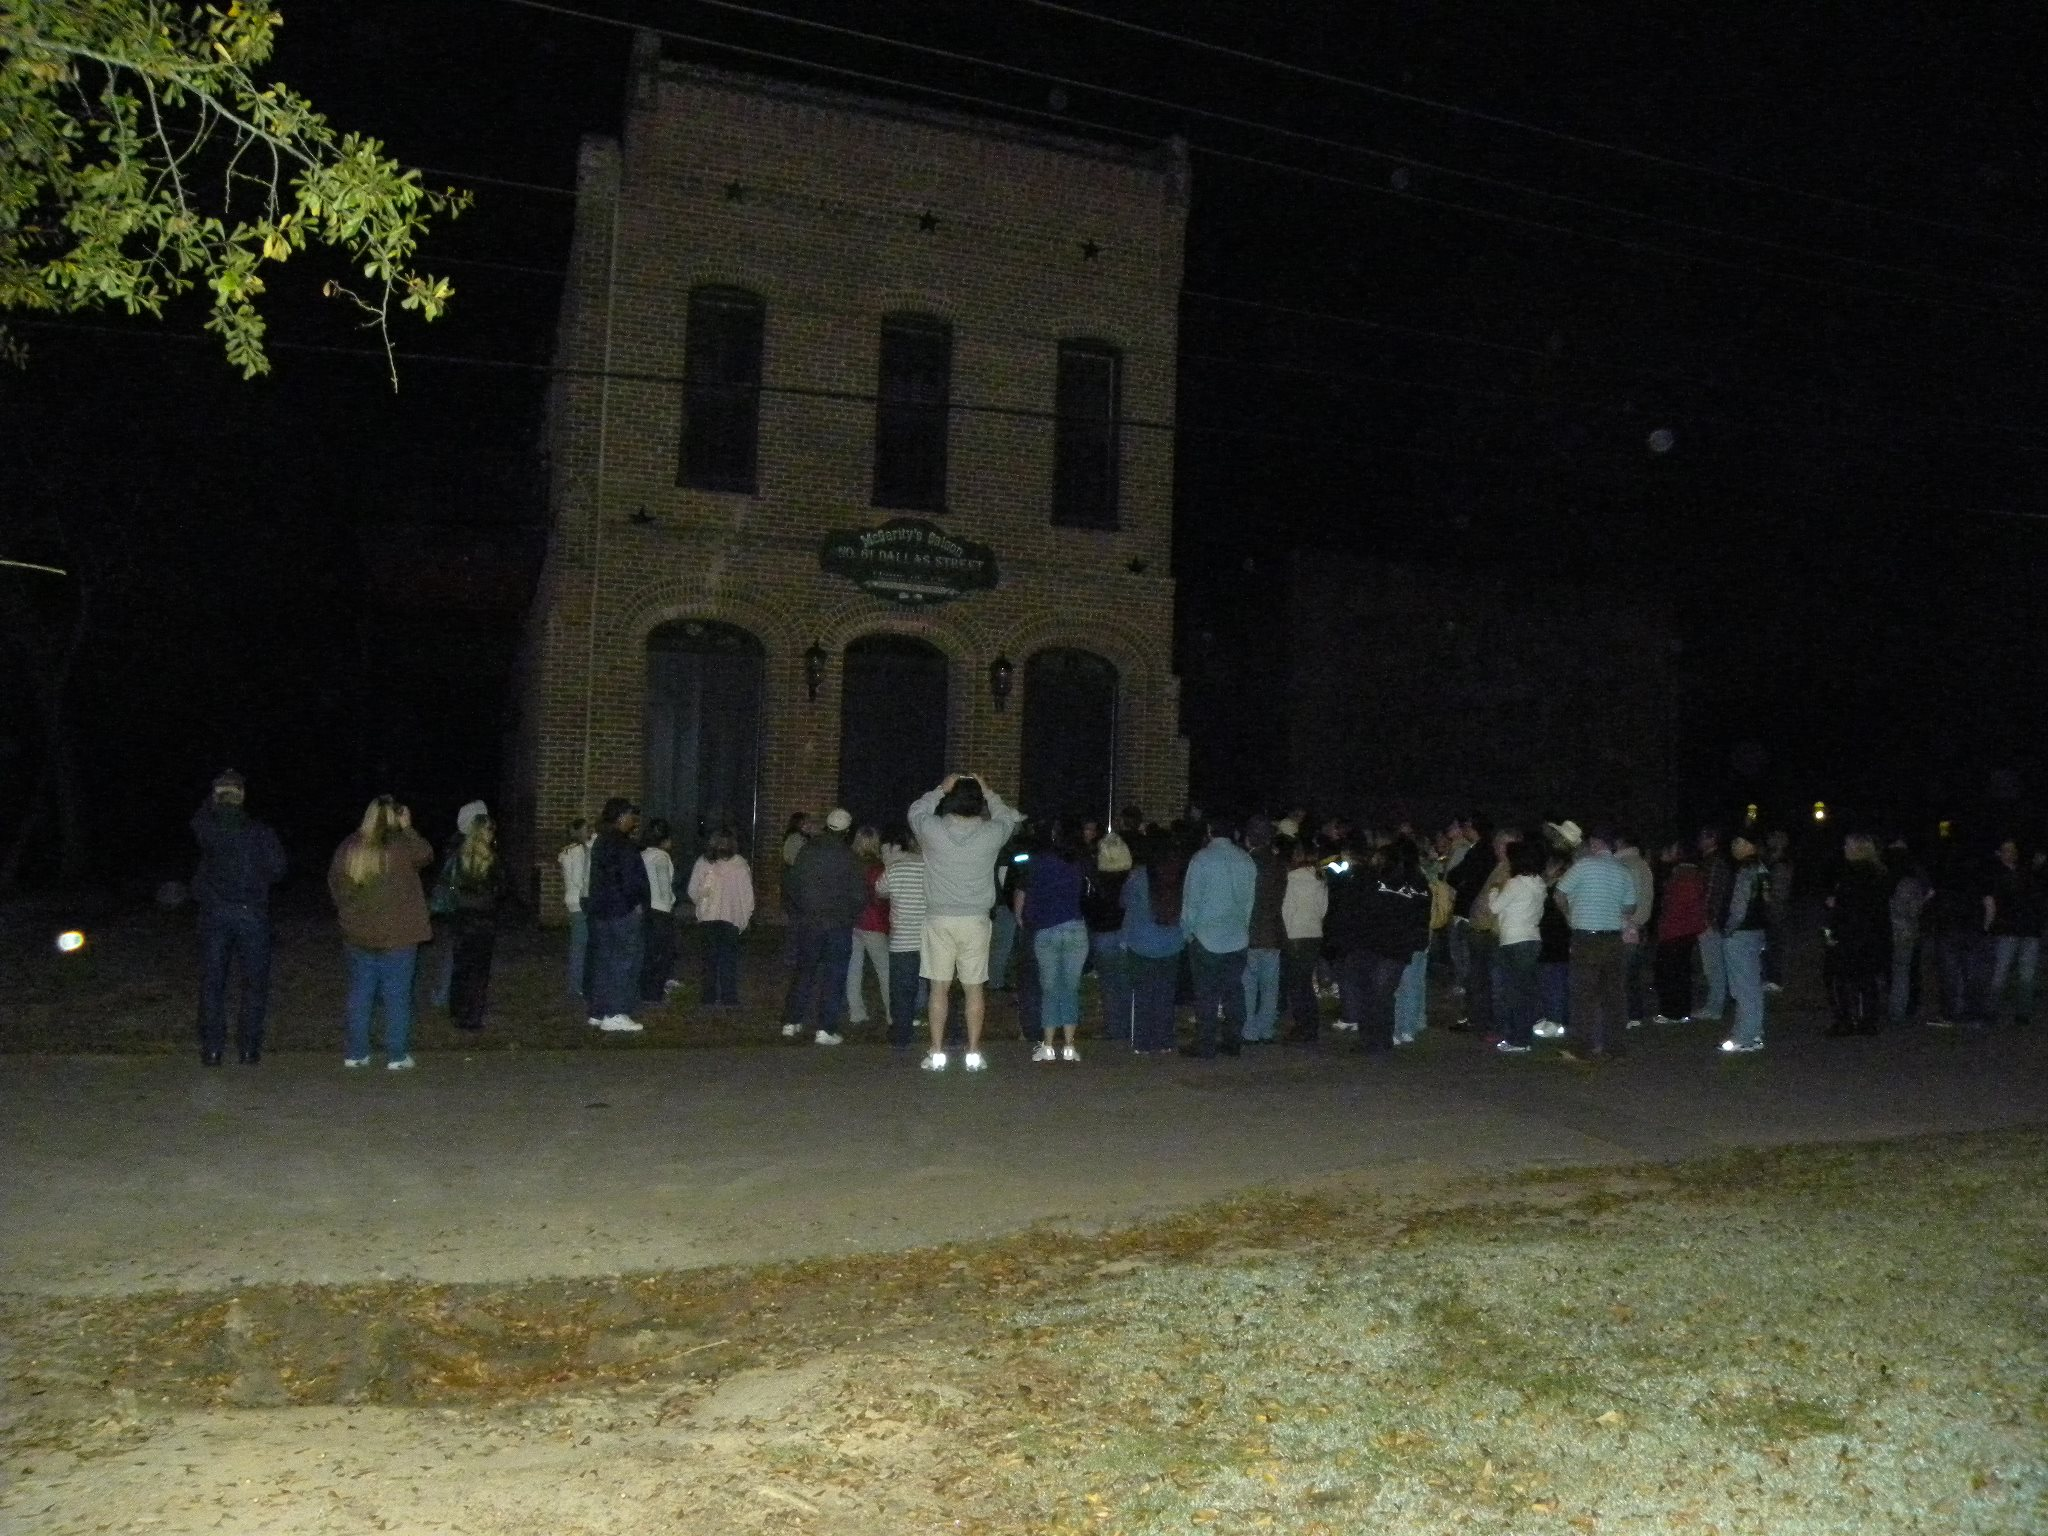 <a href=http://www.hauntedtravelsusa.com/me/haunted-travels-usa/historic-jefferson-ghost-walk-tour-6657.html target=_blank>Historic Jefferson Ghost Walk Tour</a>